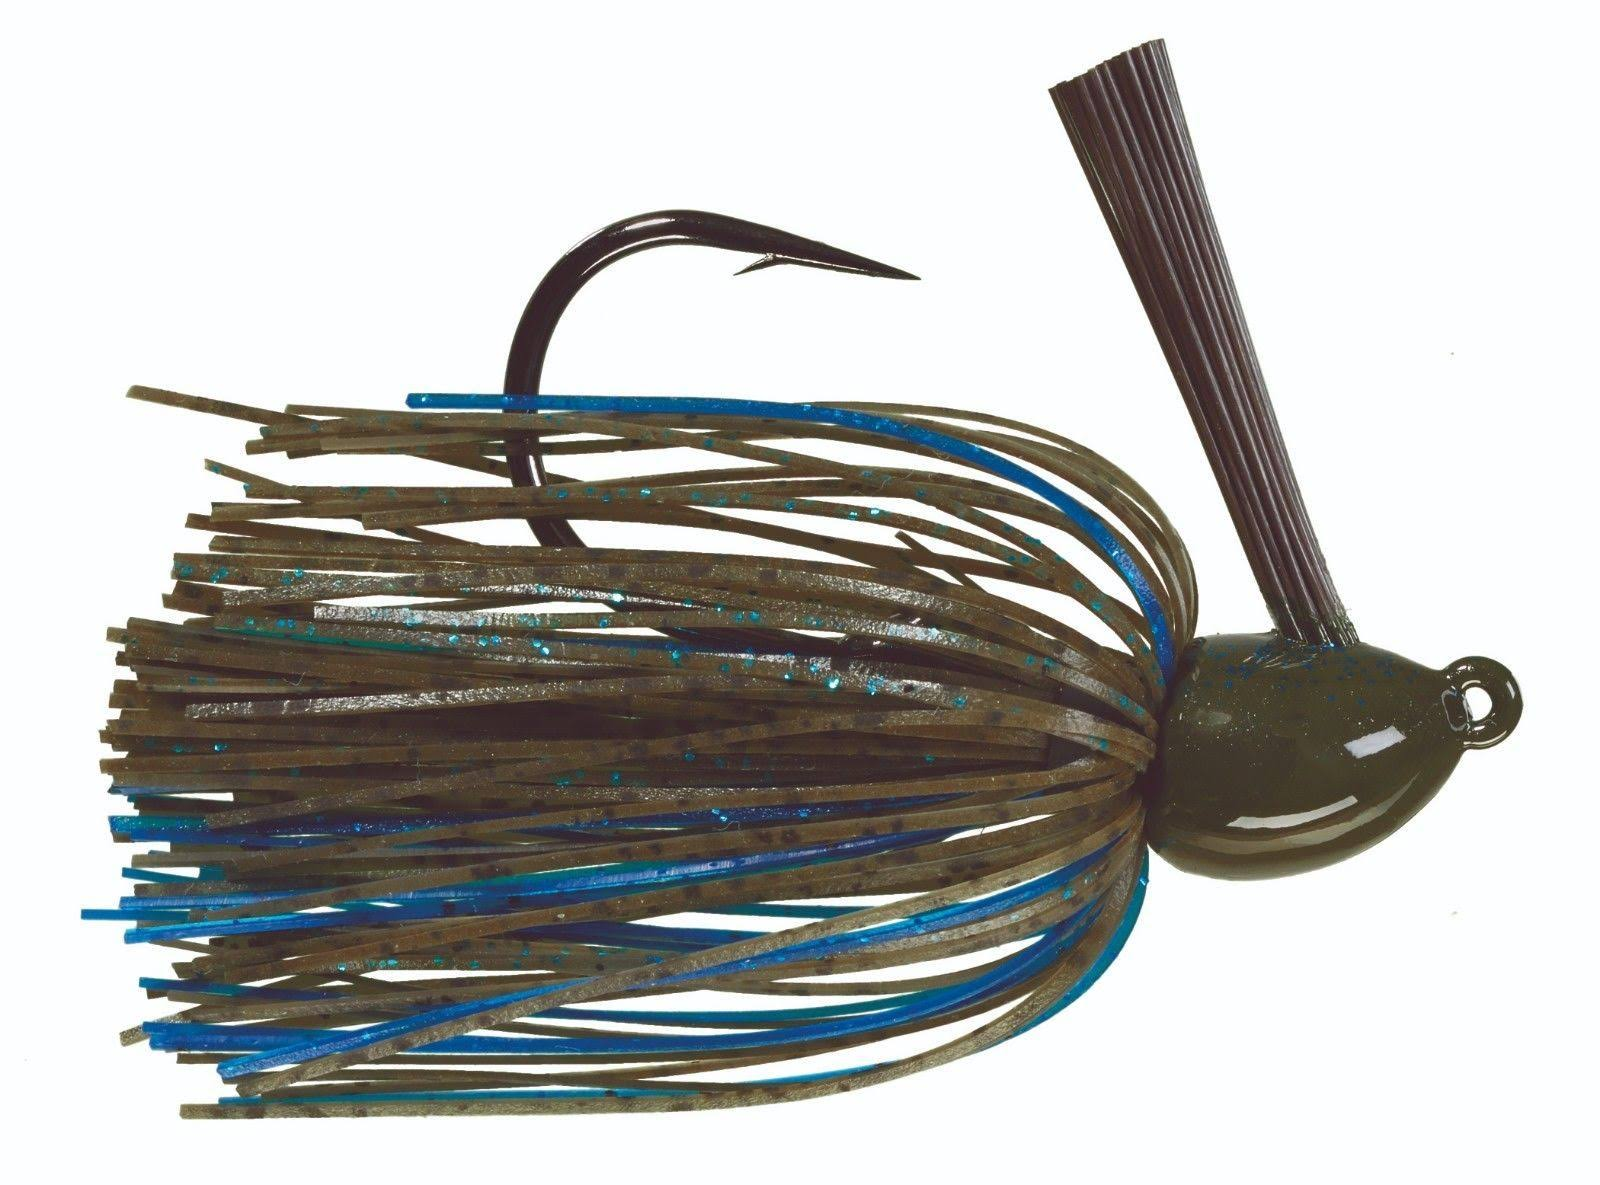 Strike King Hack Attack Jig 3/4 oz. Okeechobee Craw